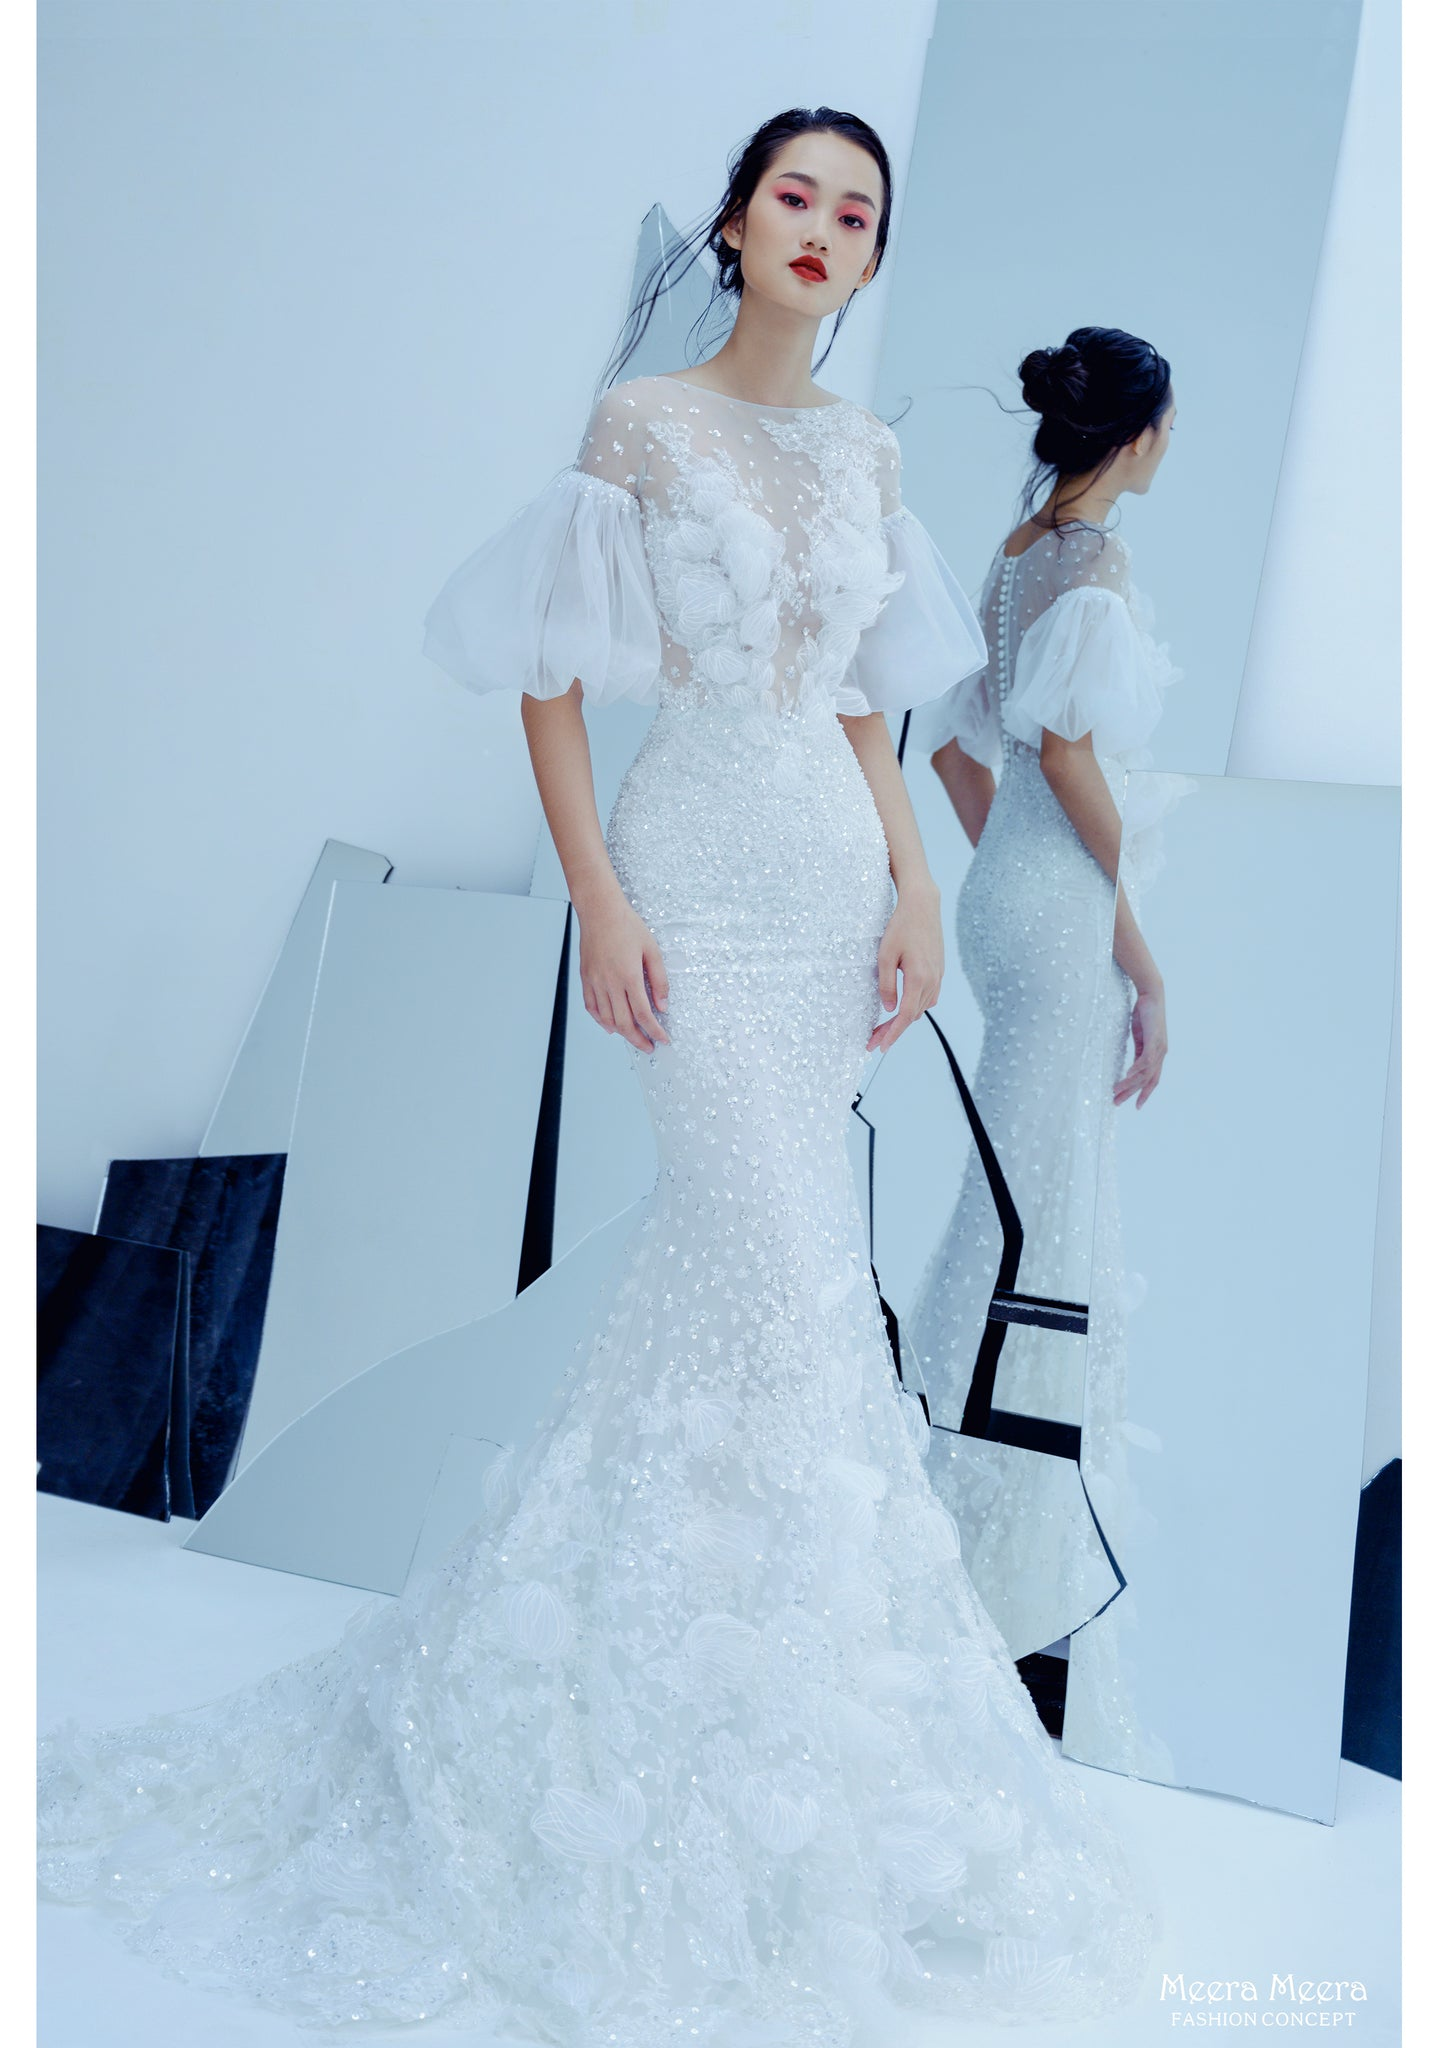 bst áo cưới hoa sen meera meera haute couture wedding dress